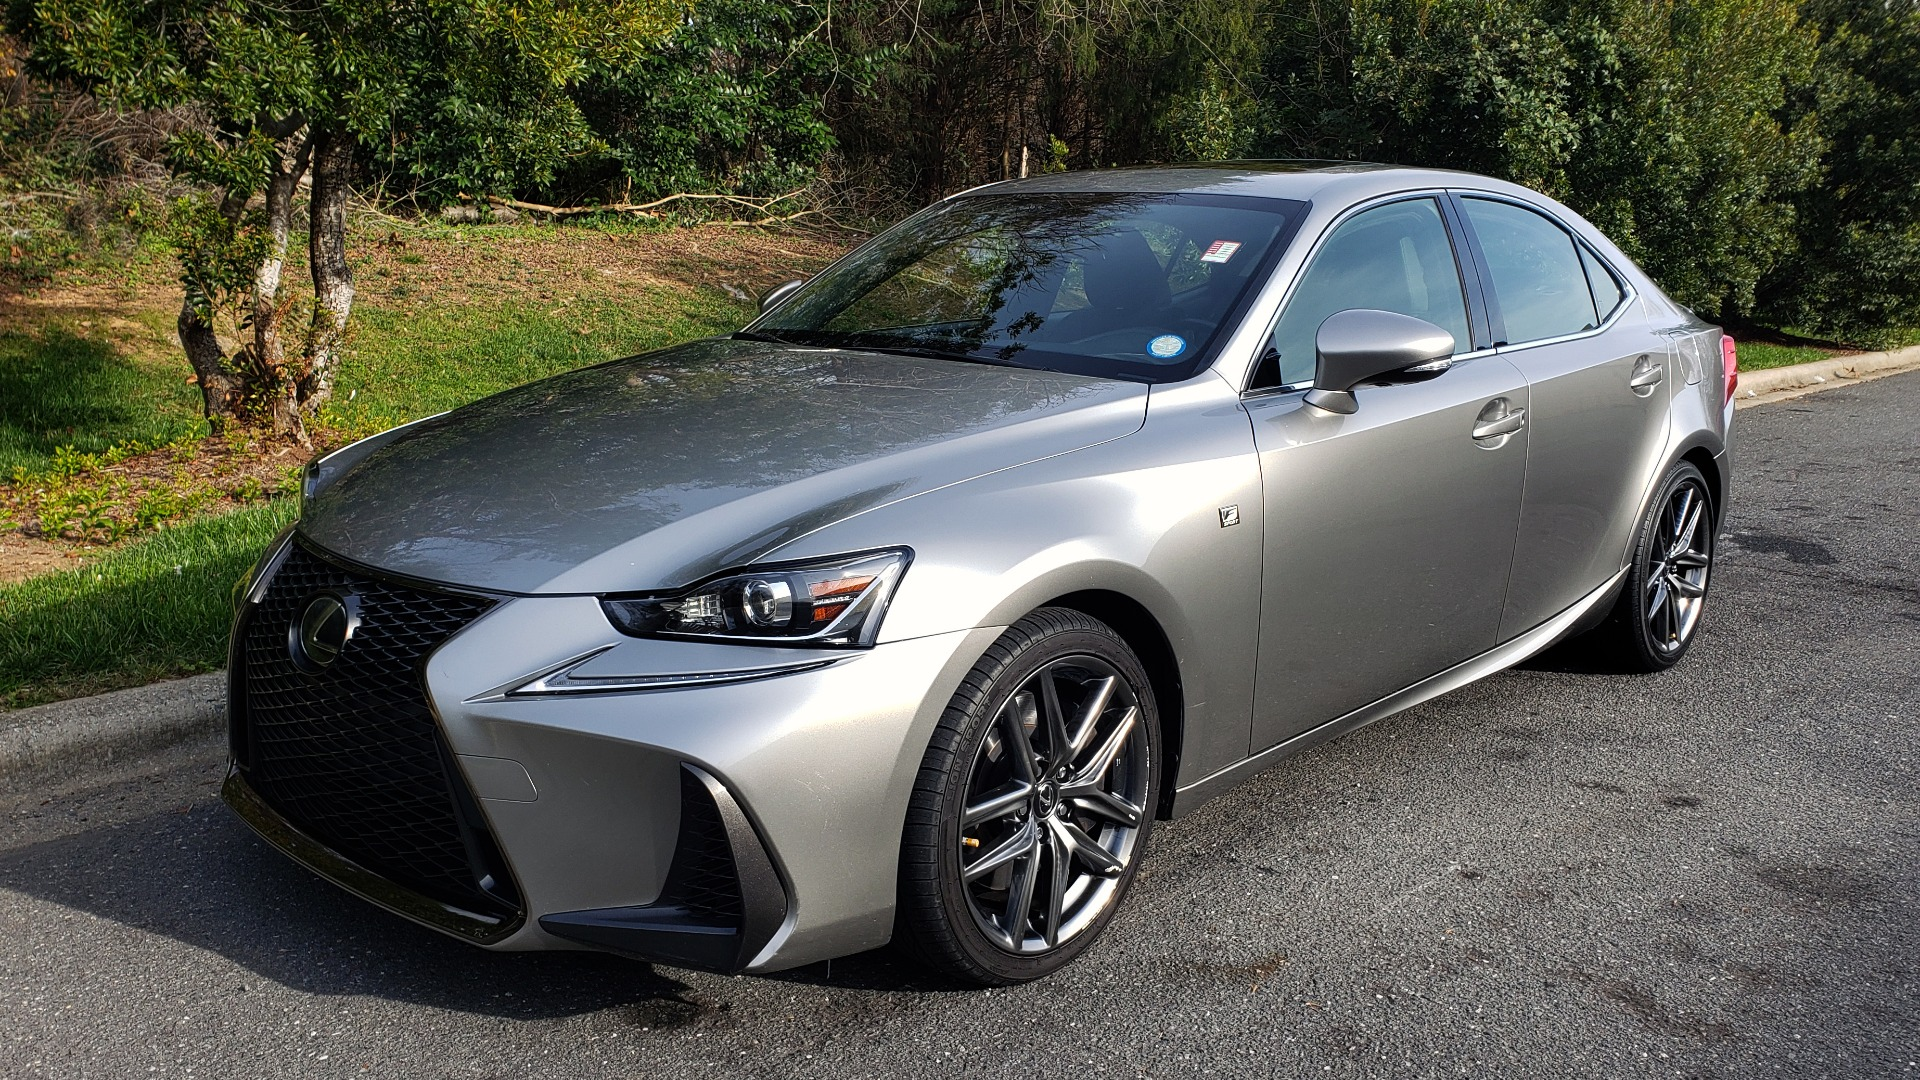 Used 2017 Lexus IS 200 TURBO F-SPORT / BSM / SUNROOF / VENT SEATS / REARVIEW for sale $24,945 at Formula Imports in Charlotte NC 28227 1